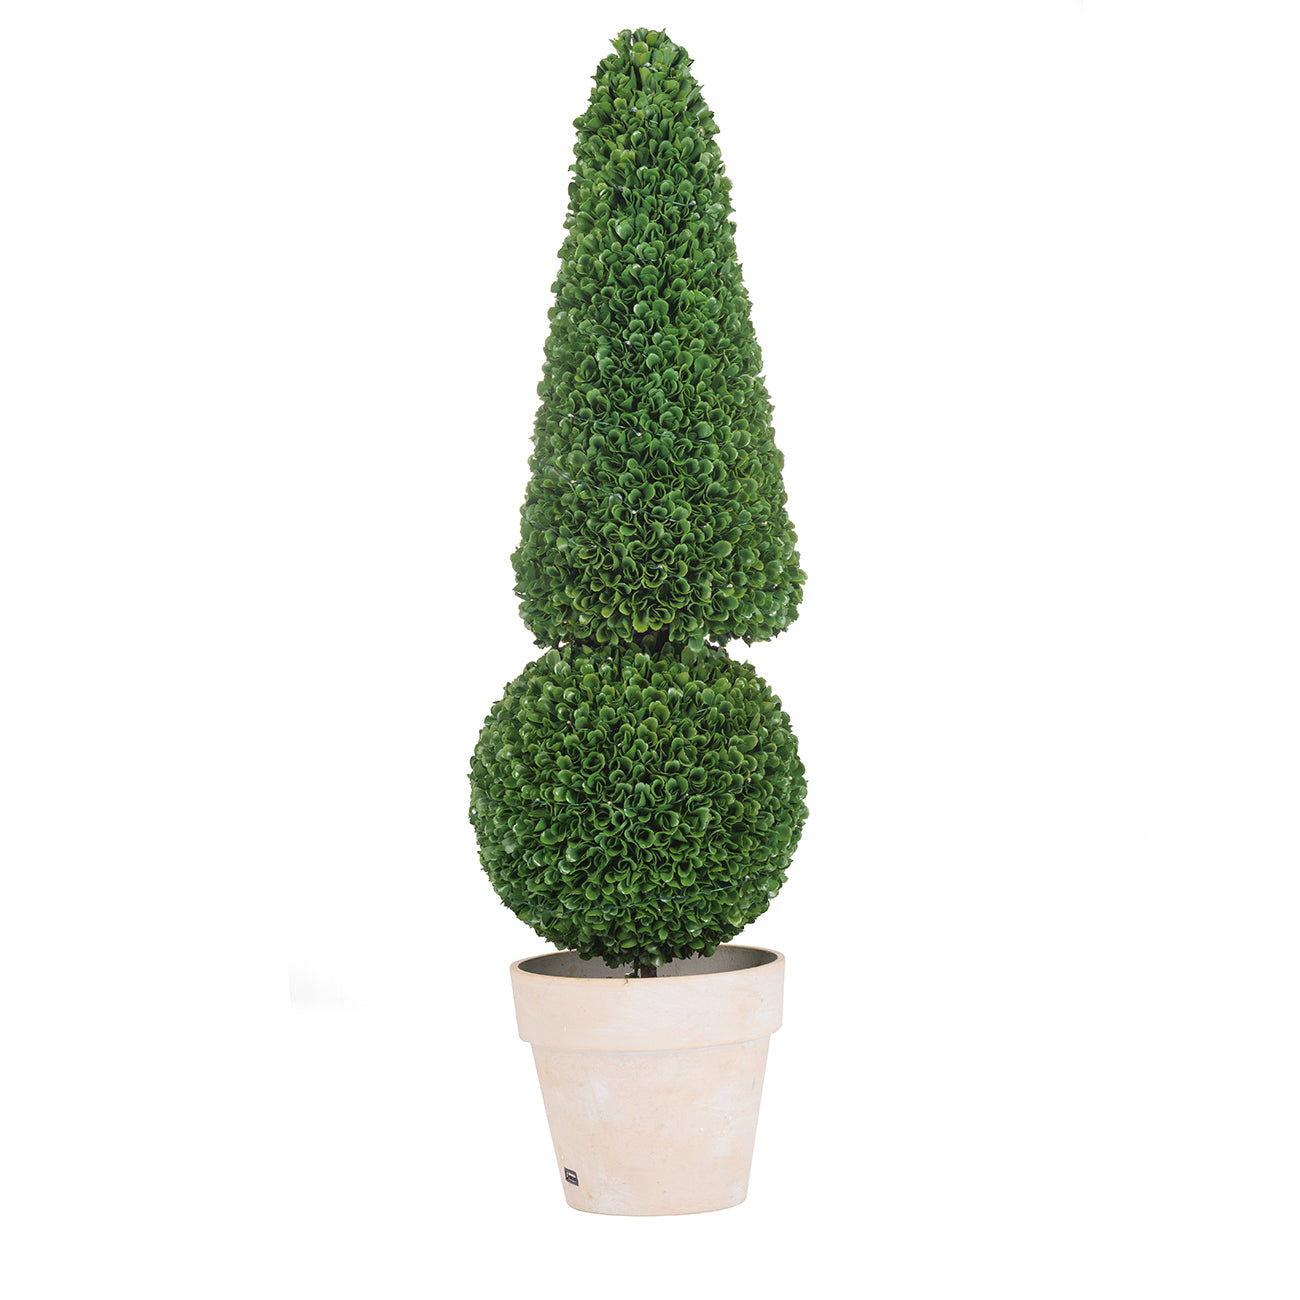 Cone&Ball Topiary Light L